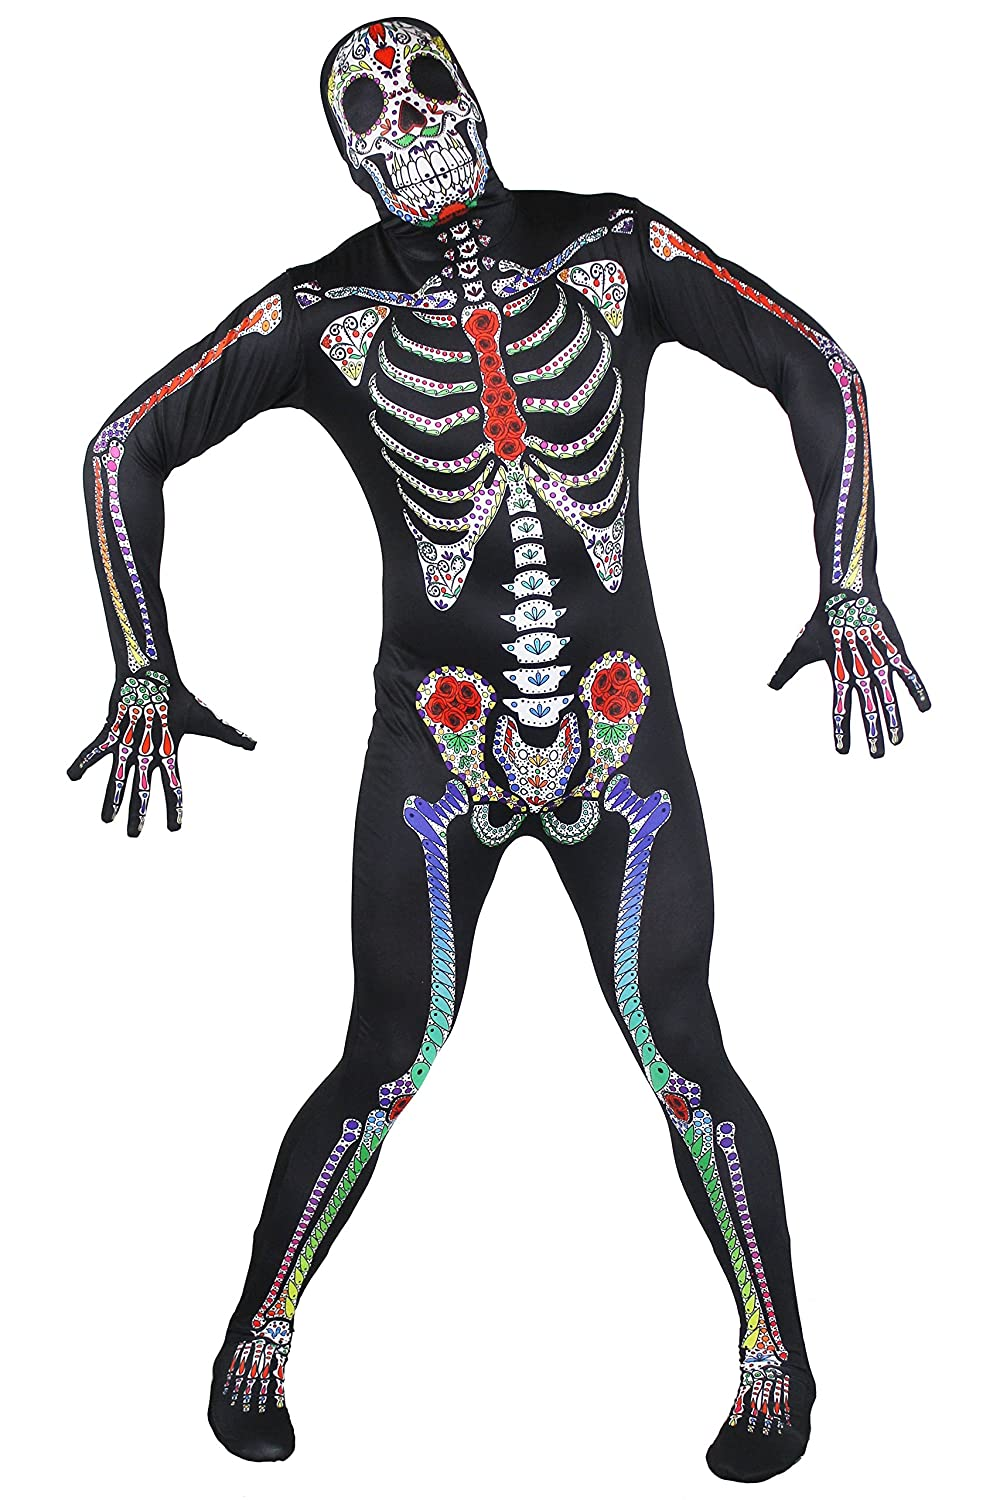 DAY OF THE DEAD SKELETON SUIT ADULT MENS MEXICAN VOODOO HALLOWEEN COSTUME